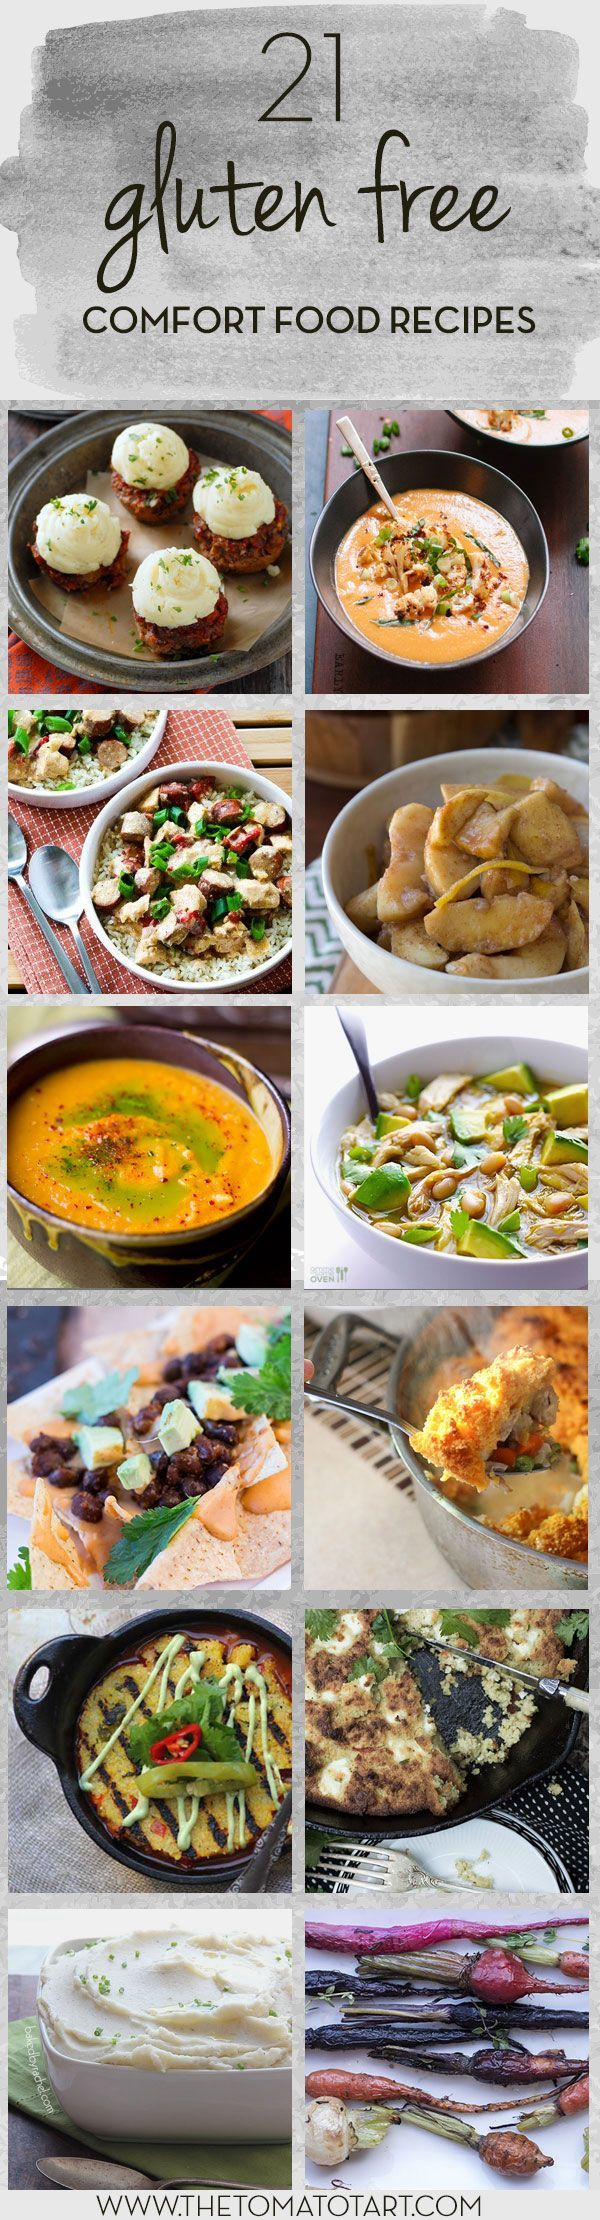 21 Gluten Free Comfort Food Recipes including Gluten Free Mac and Cheese, Swedish Meatballs, Creamy Vegan Carrot Soup, Chicken Pot Pie, and Nachos! #kombuchaguru #glutenfree Also check out: http://kombuchaguru.com